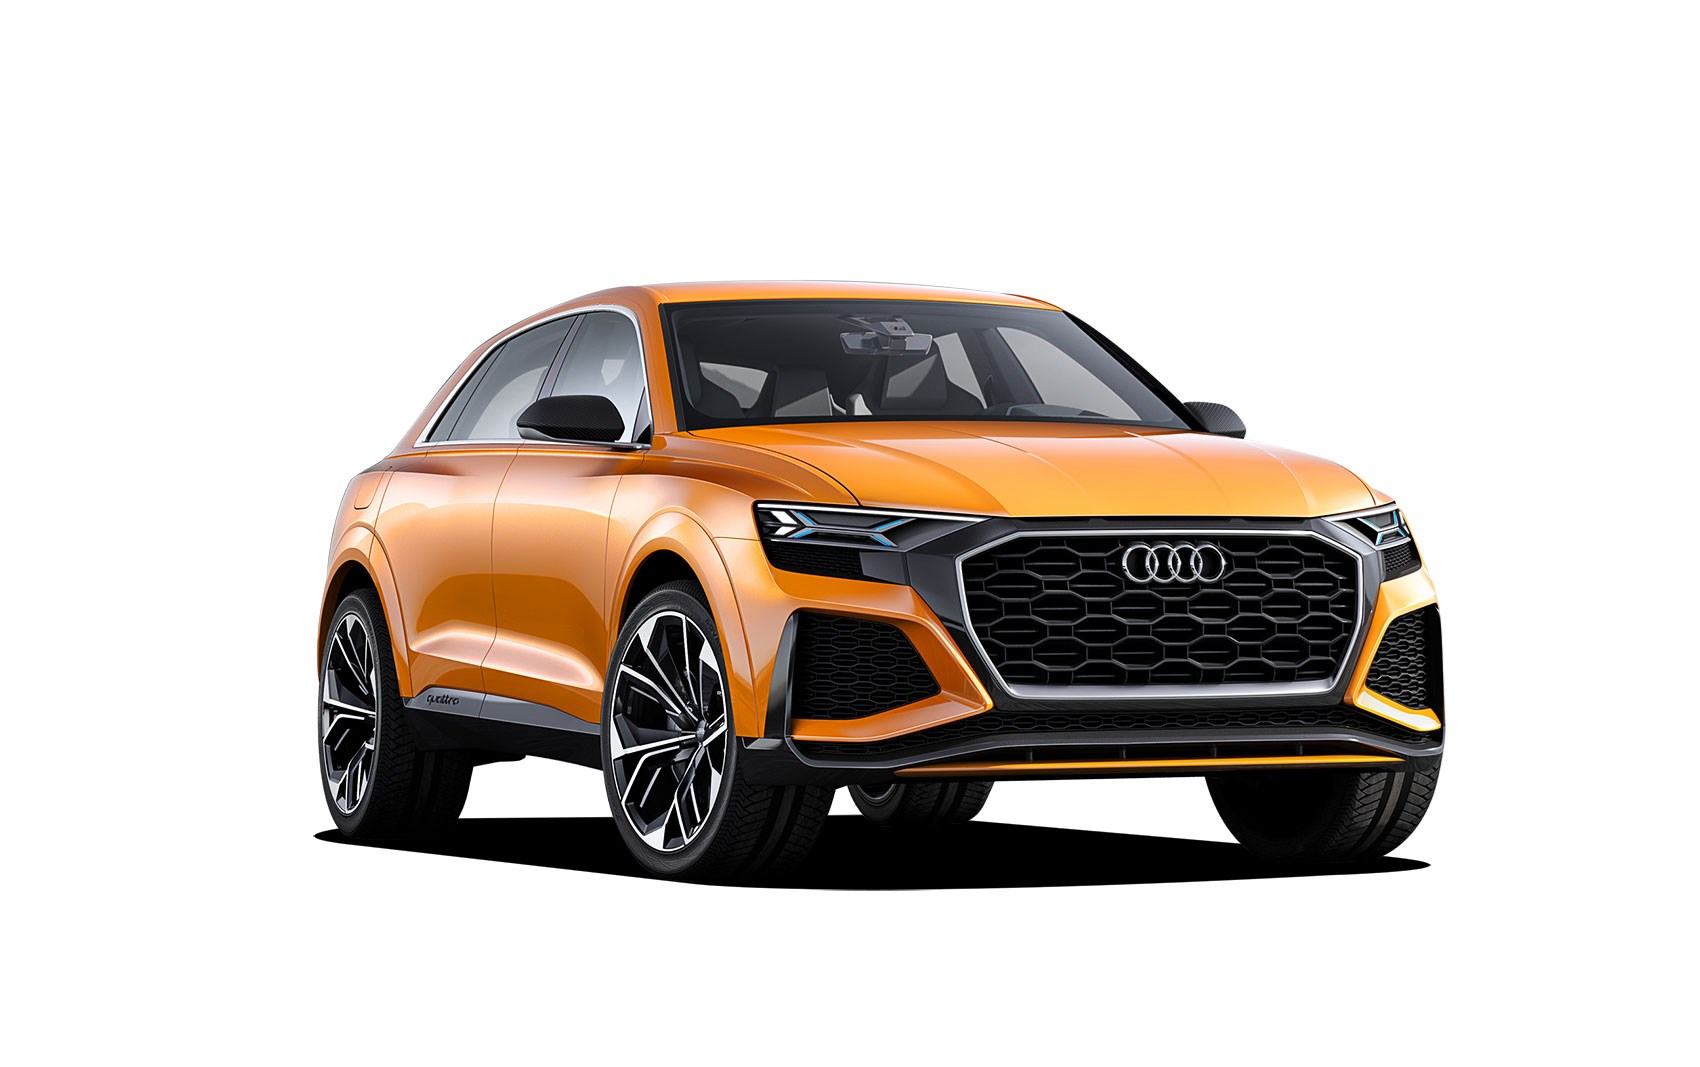 Audi Q8 Car Price In India 2016 Audi Q7 First Look 2018